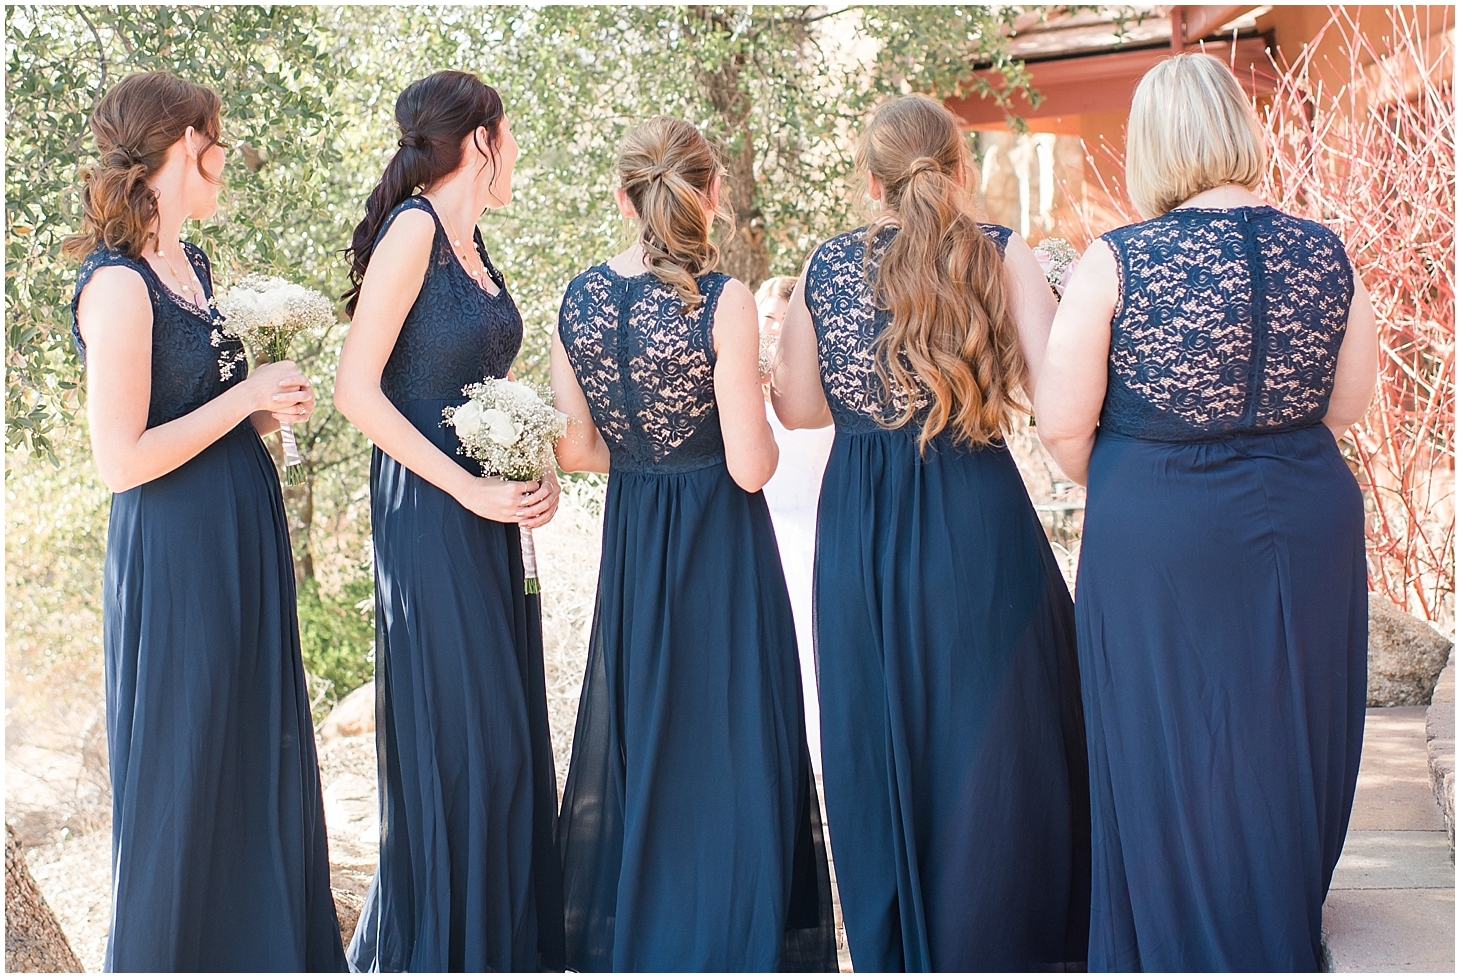 The bride opted to do a 'First Look' with her bridesmaids, which I thought was such a unique change!